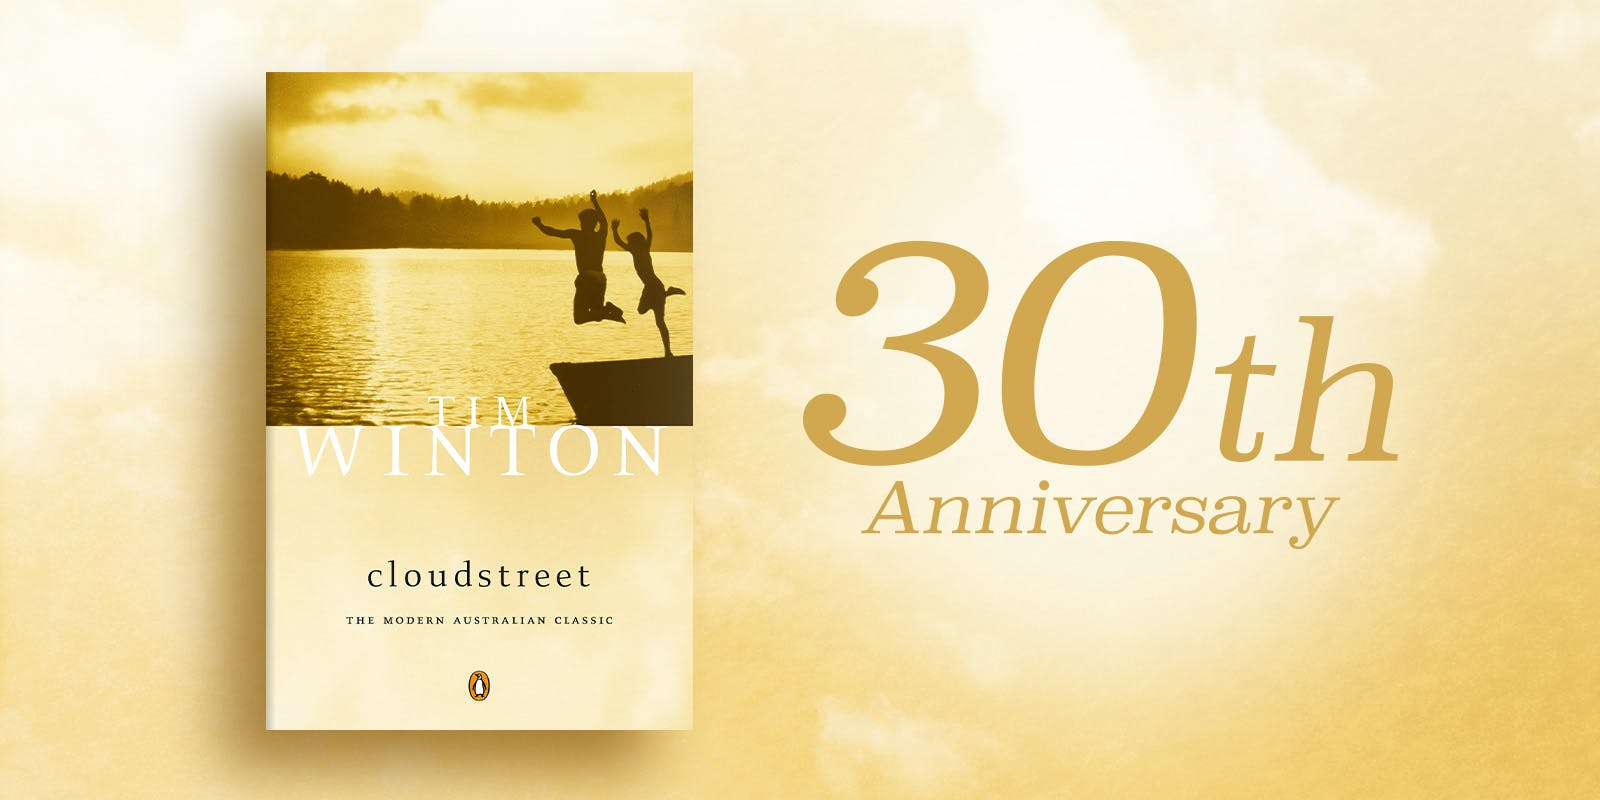 Celebrating the 30th anniversary of Cloudstreet